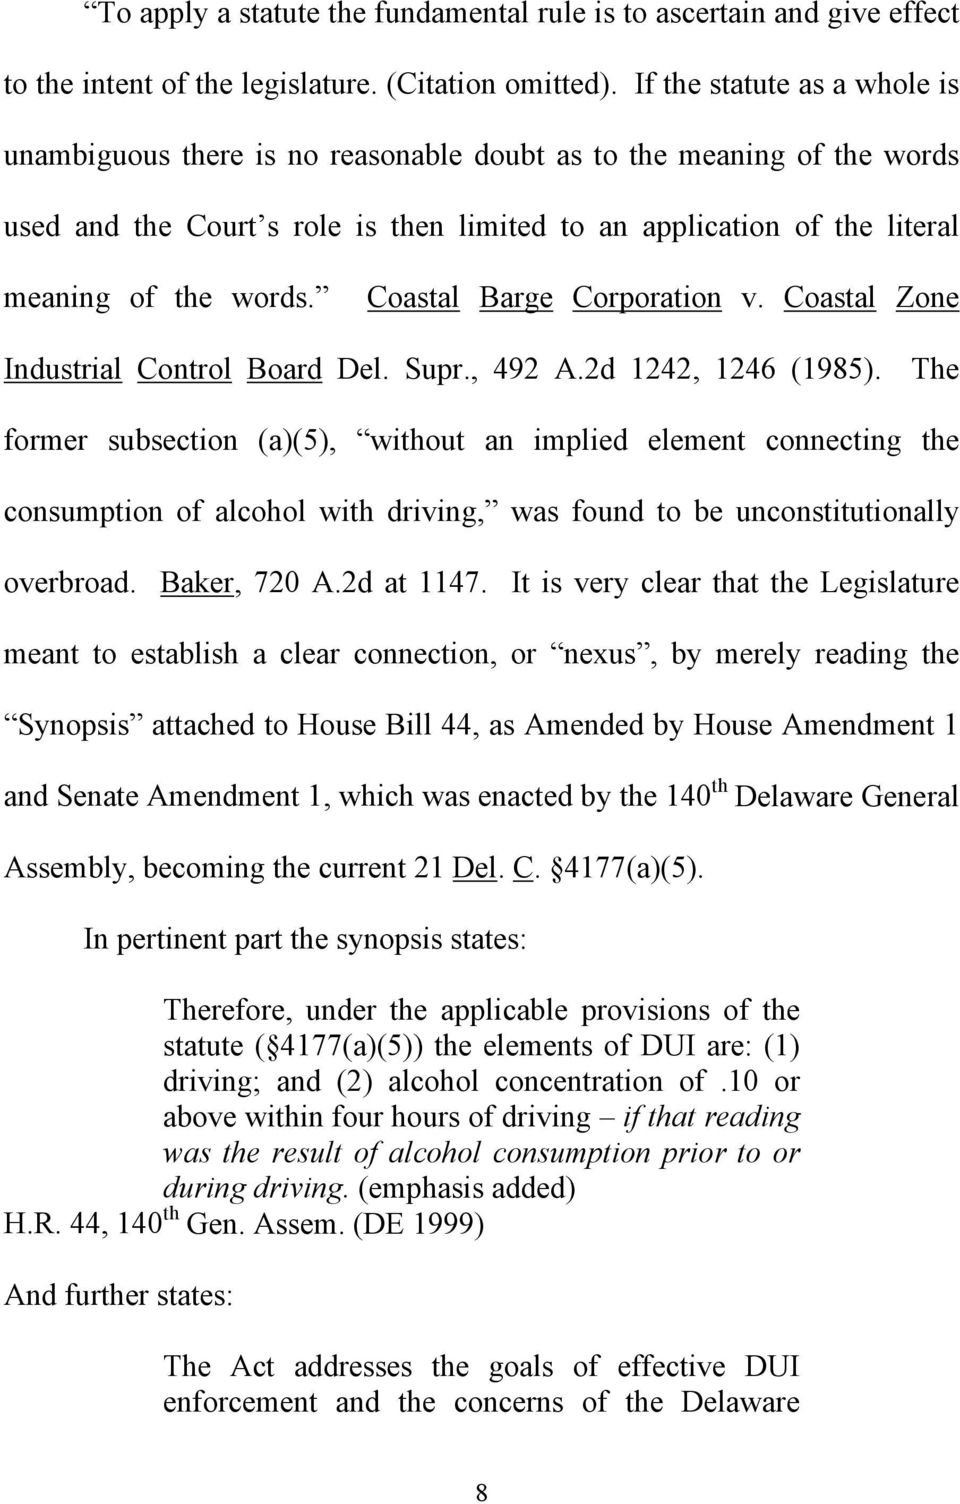 Coastal Barge Corporation v. Coastal Zone Industrial Control Board Del. Supr., 492 A.2d 1242, 1246 (1985).